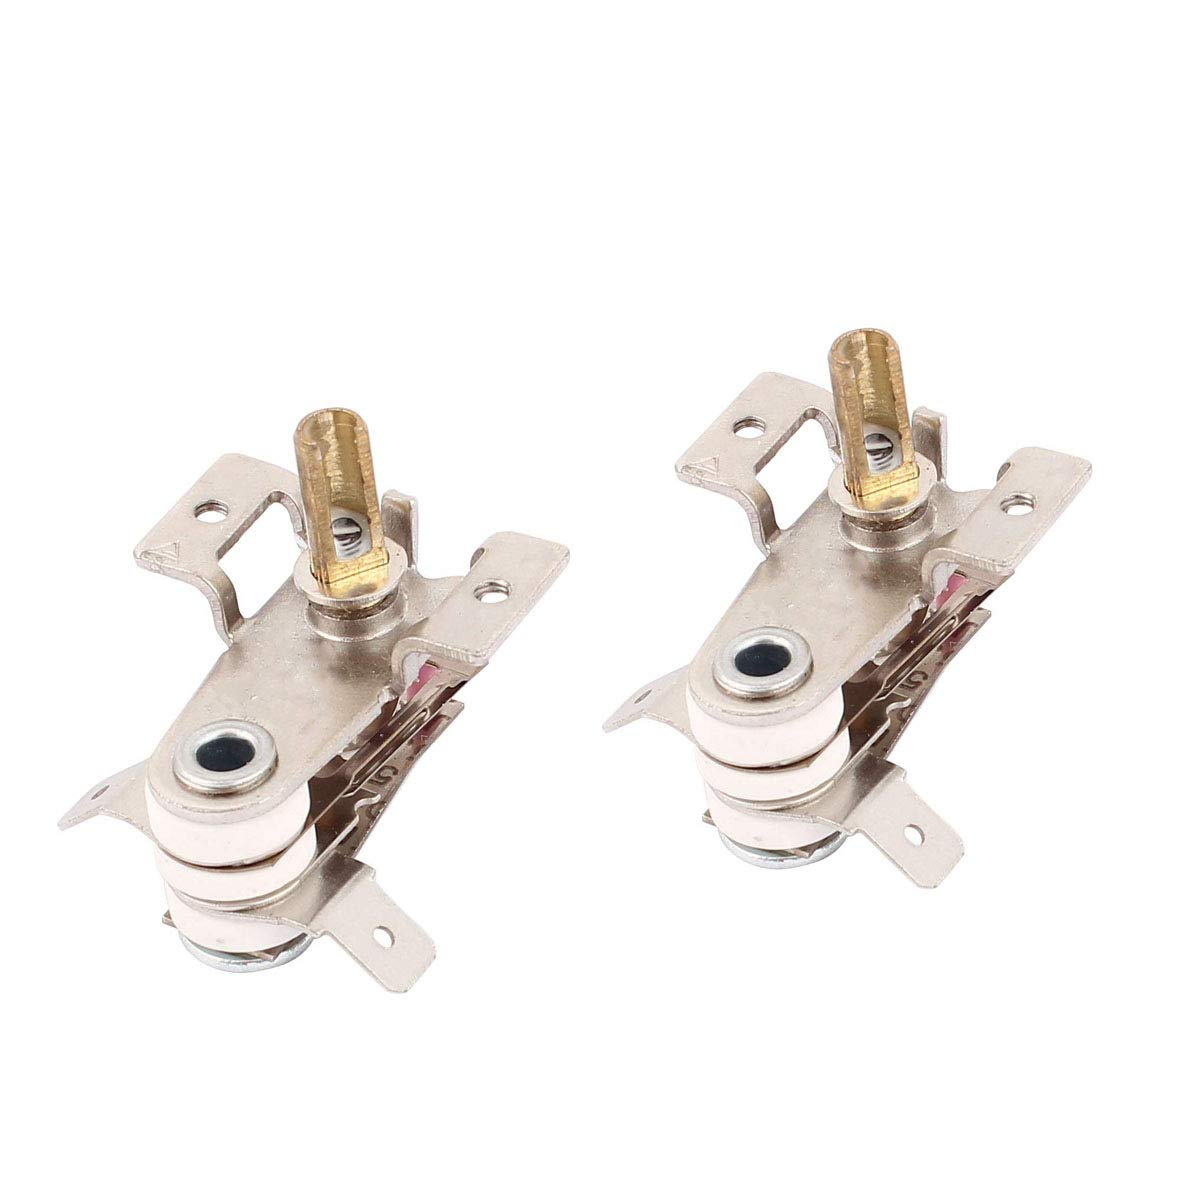 COMOK 2pcs AC 250V 125V 16A Adjustable Bimetal Cooker Temperature Heating Thermostat Controller Switch